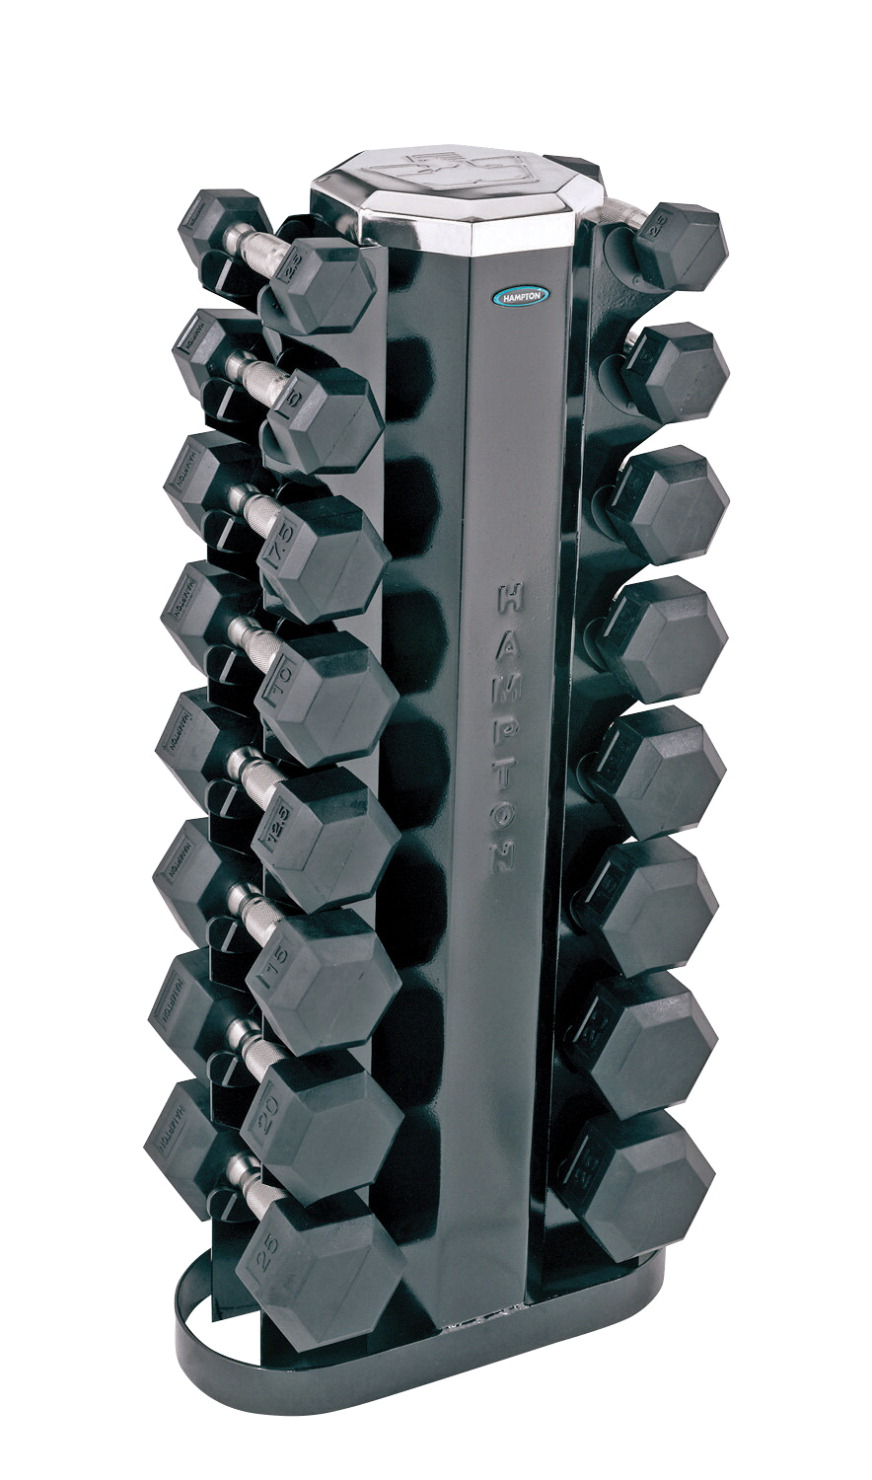 Hampton Dura-Bells with Storage Rack, Set of 16